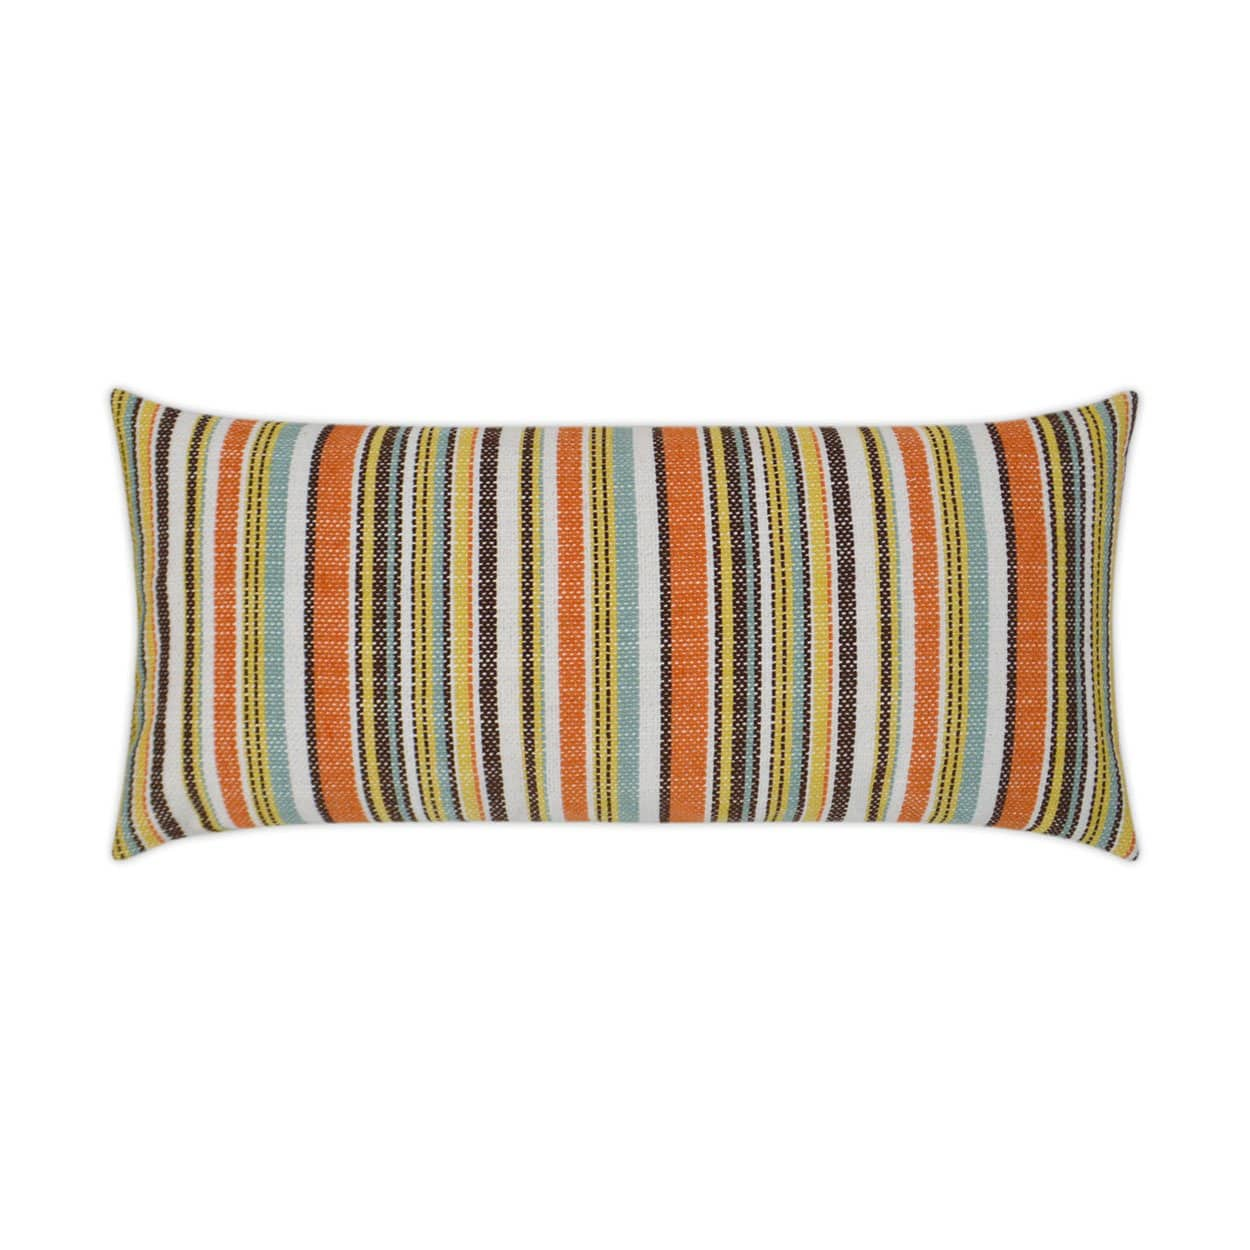 D.V. Kap D.V. Kap Fancy Stripe Lumbar Outdoor Pillow - Available in 2 Colors Navy OD-304-N